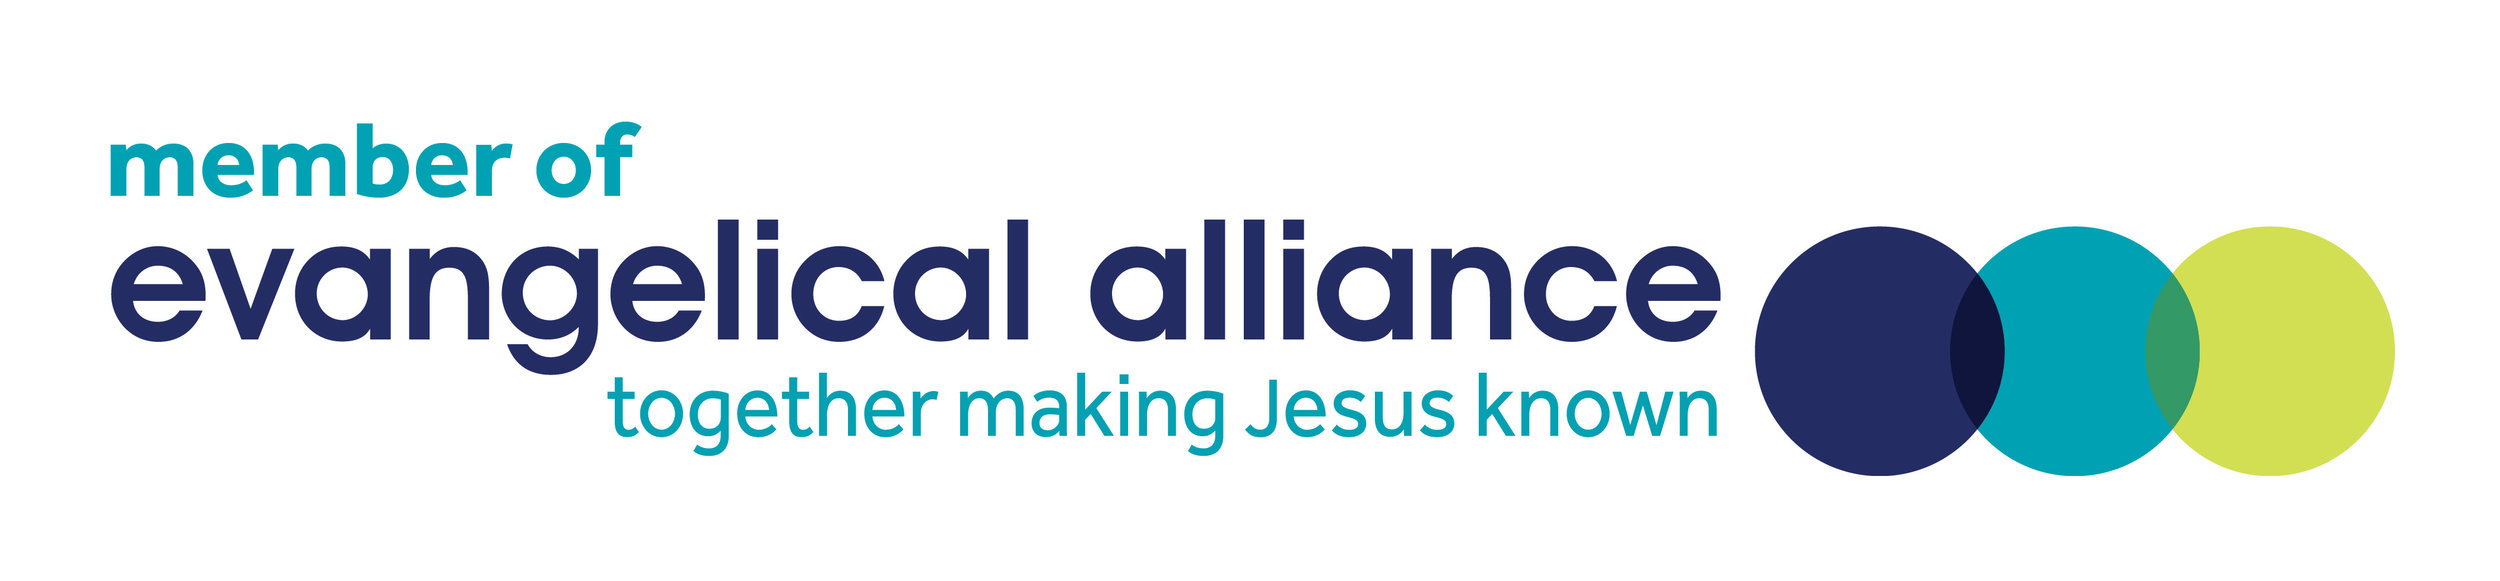 The Evangelical Alliance is united around a basis of faith, joins hundreds of organisations, thousands of churches and tens of thousands of individuals to make Jesus known across the UK.  Across Woking became a member in April 2019 (membership no. 245681)